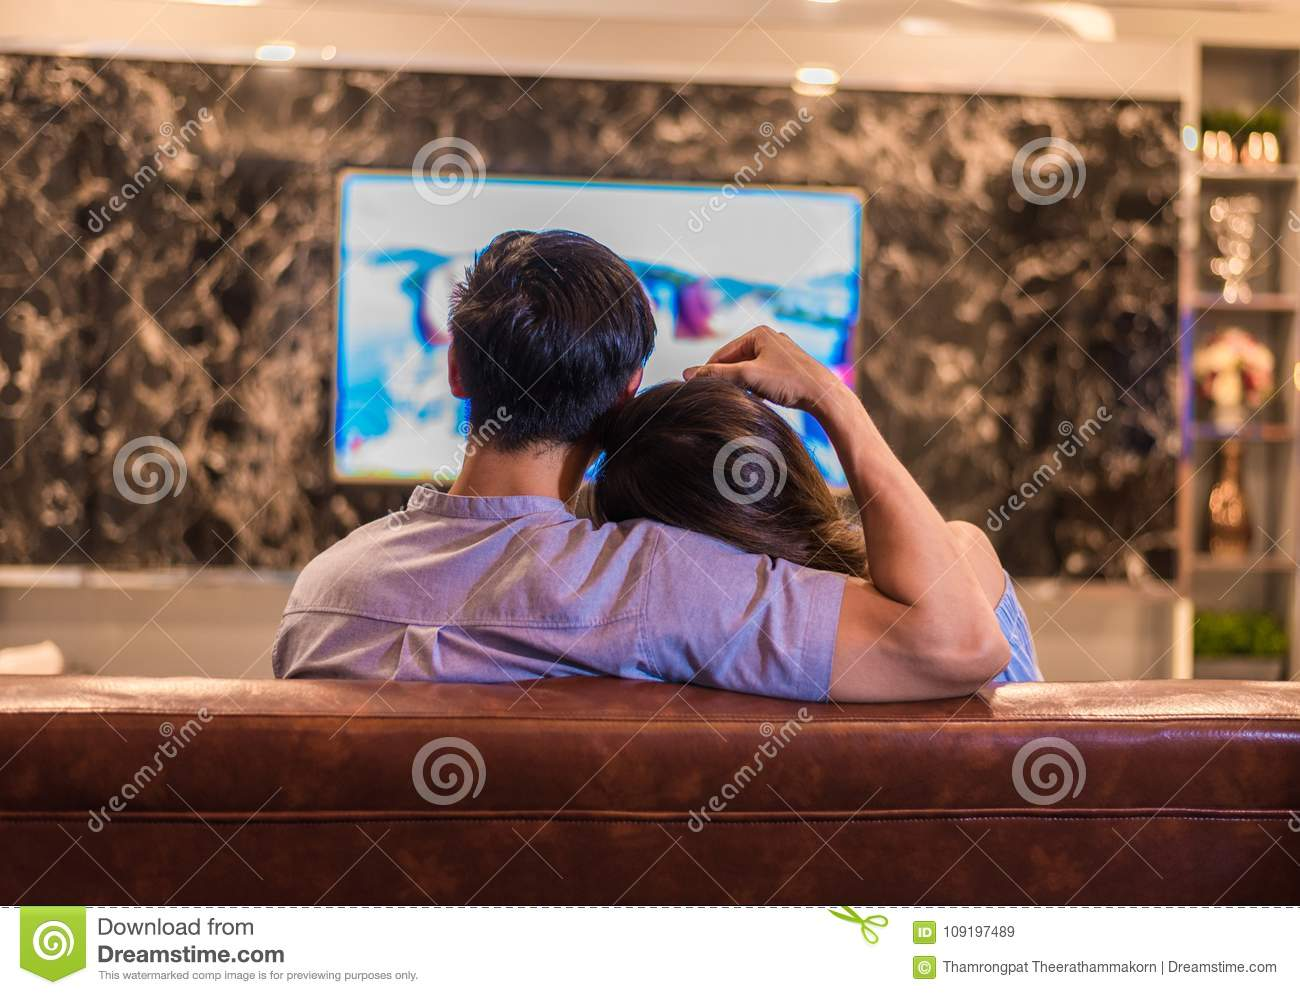 Asian young lovers watching television on sofa. Couples and Relax concept. Holiday and vacation concept. Night dating and